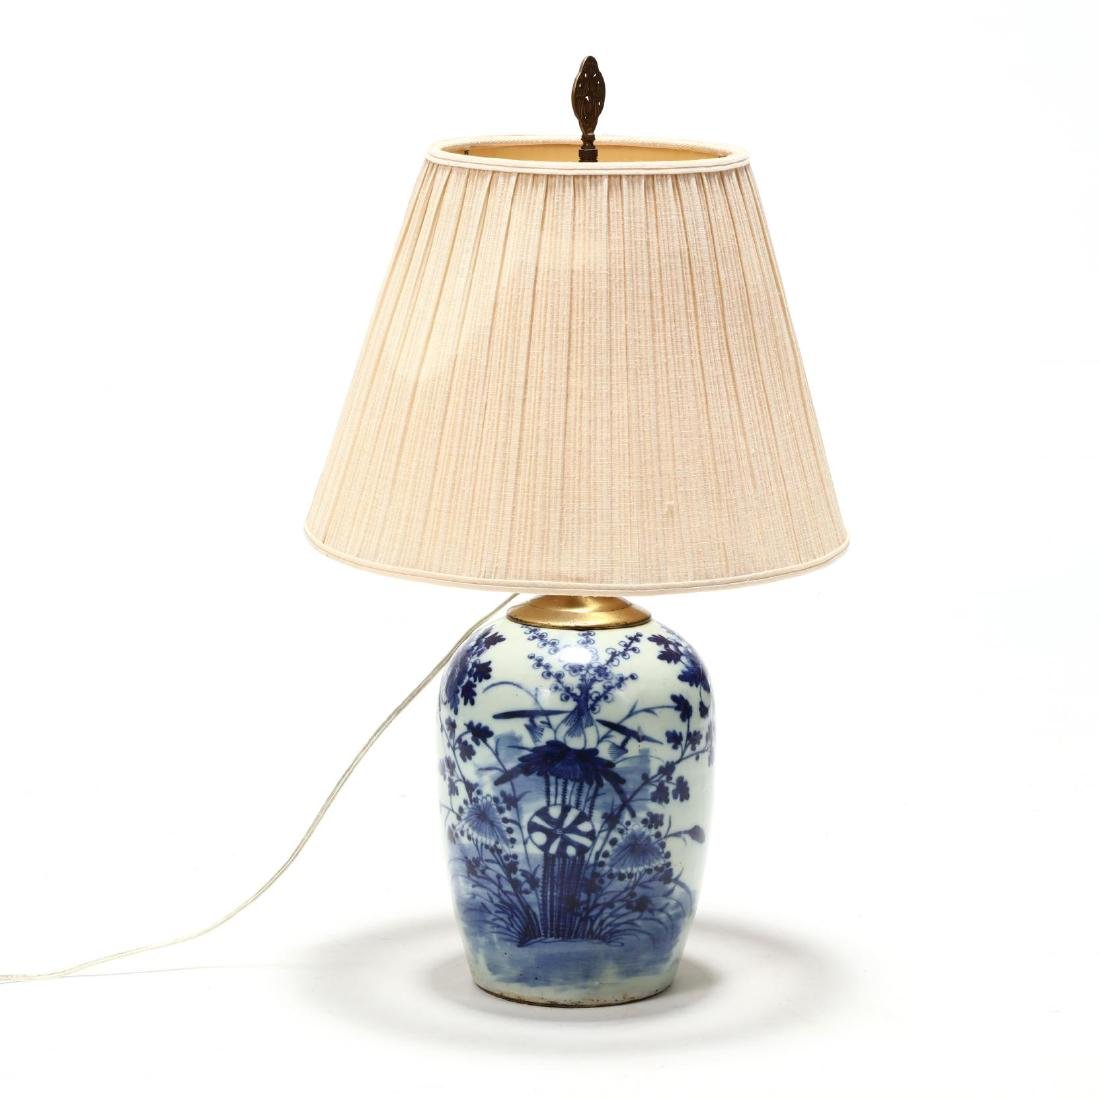 Antique Chinese Blue and White Porcelain Table Lamp